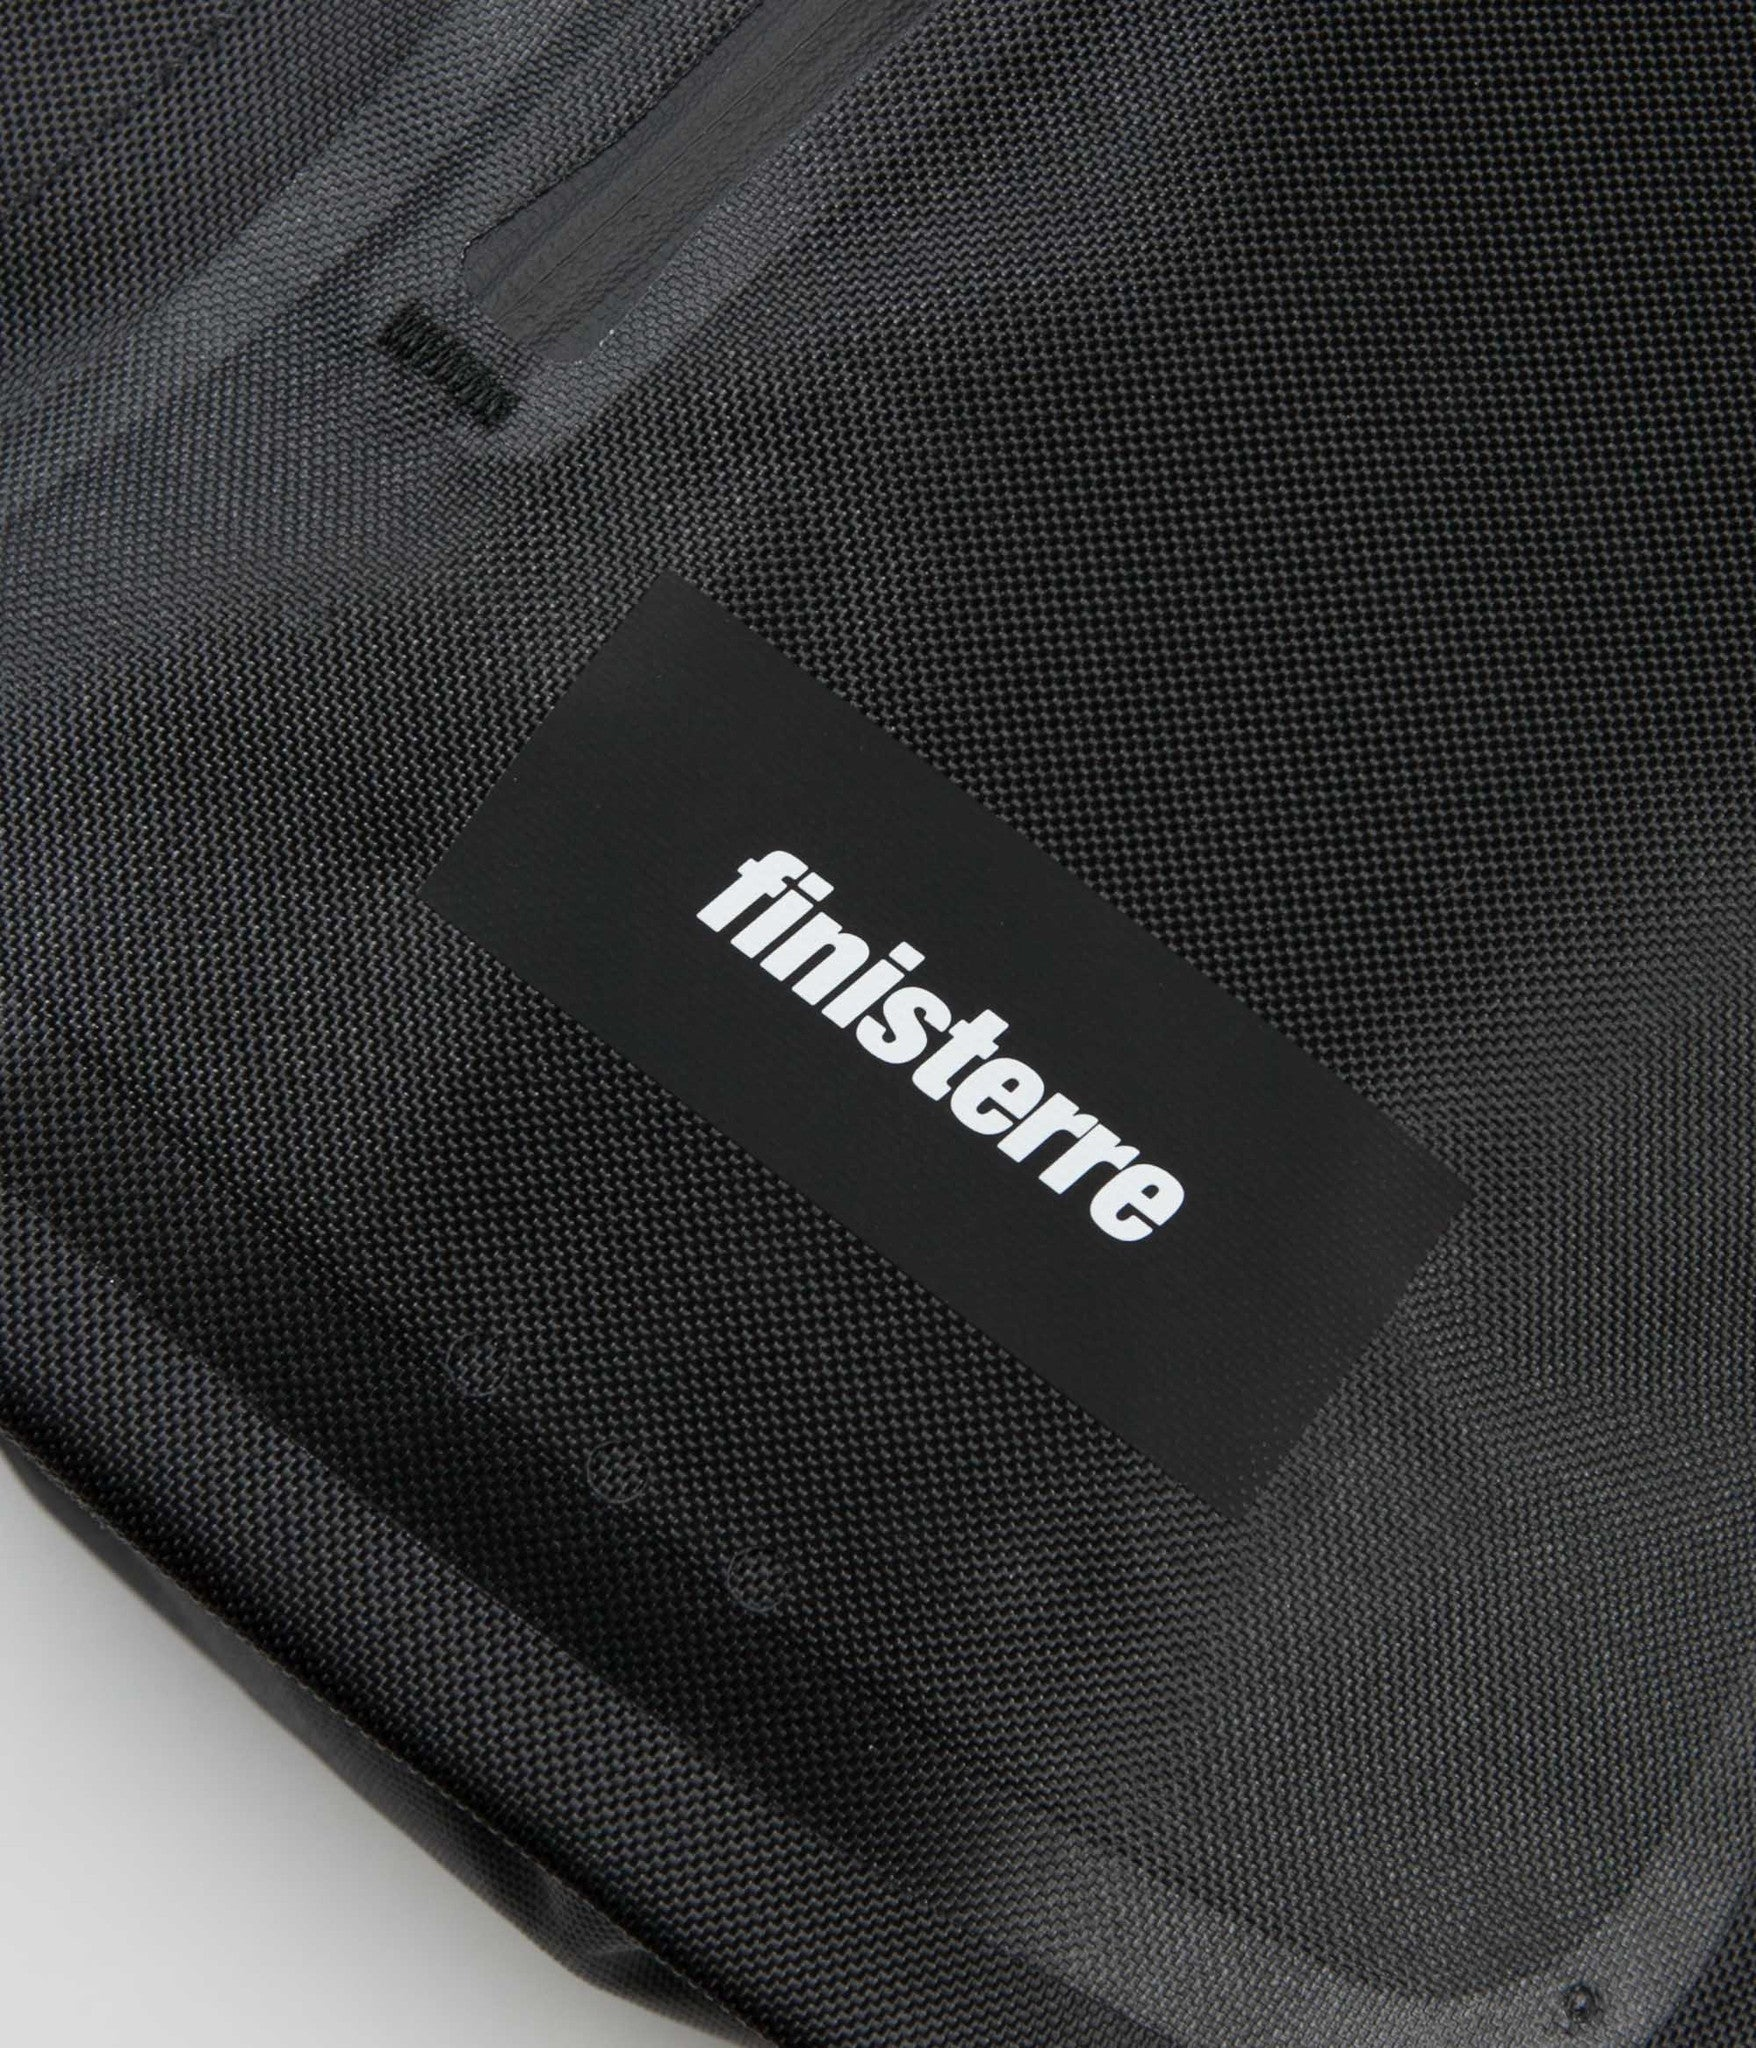 Finisterre Waterproof Rucksack - Black